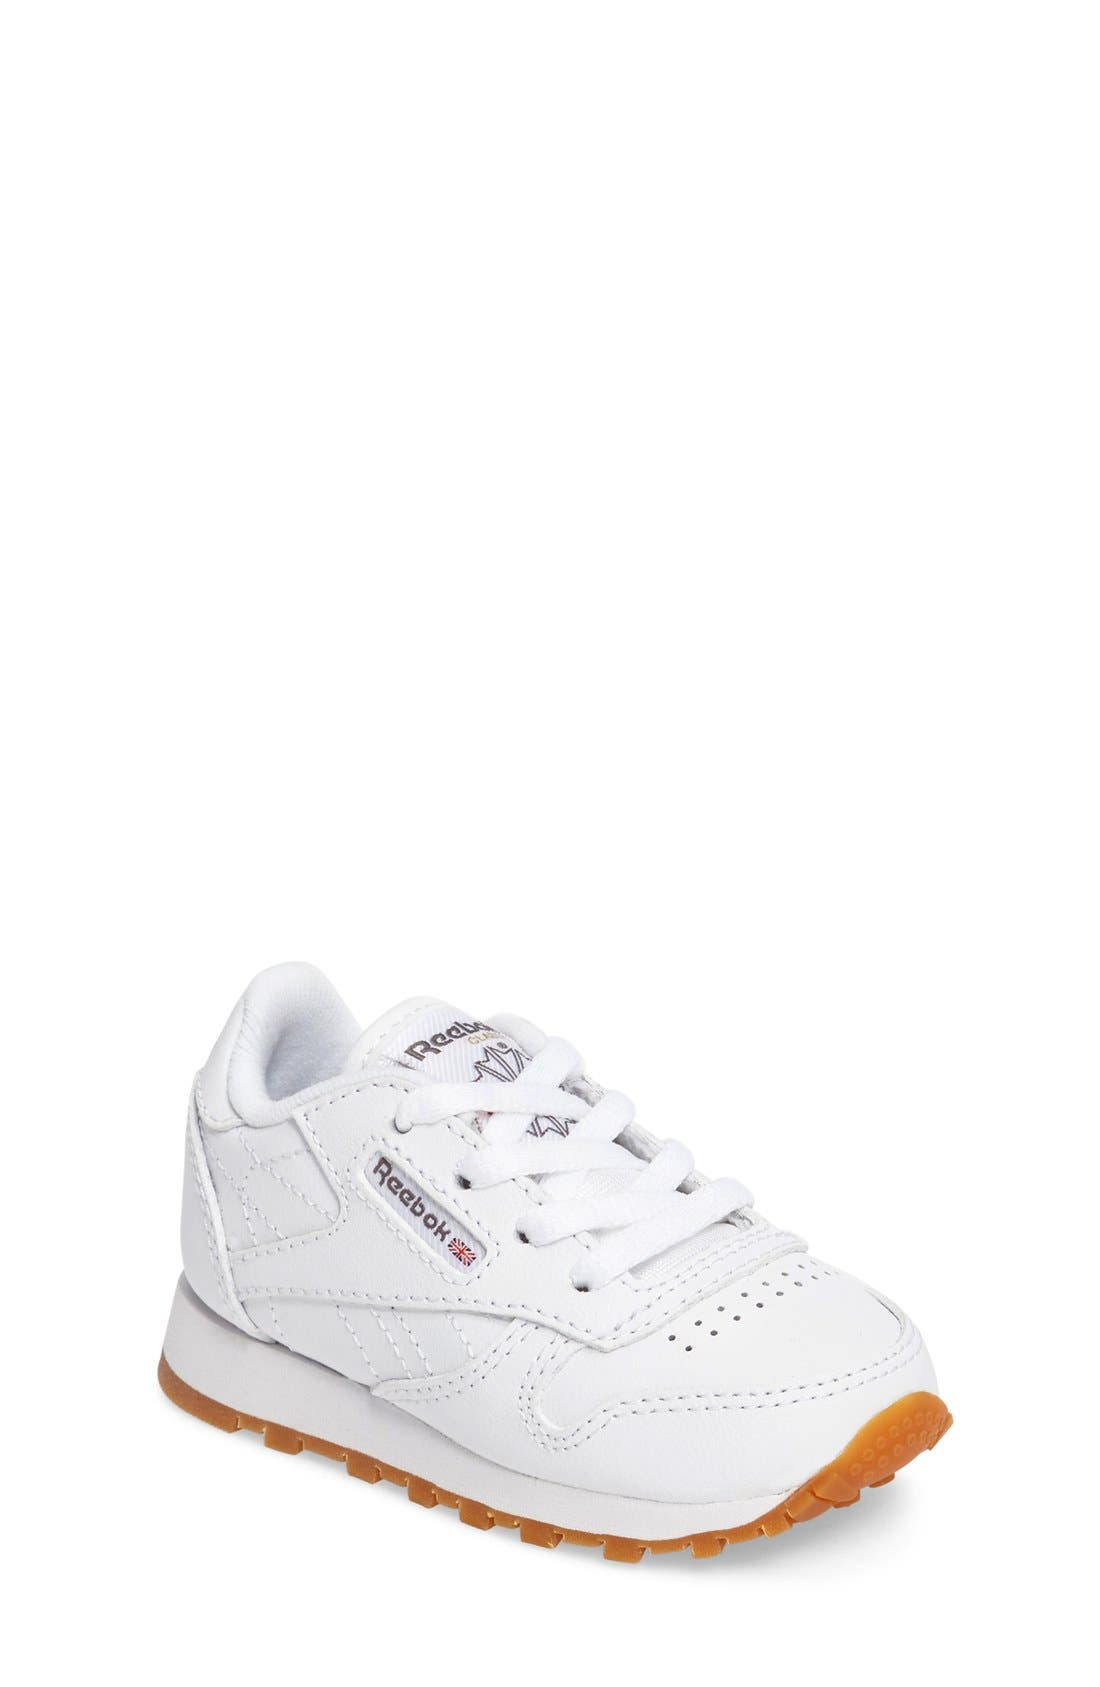 Classic Leather Sneaker,                             Main thumbnail 1, color,                             103